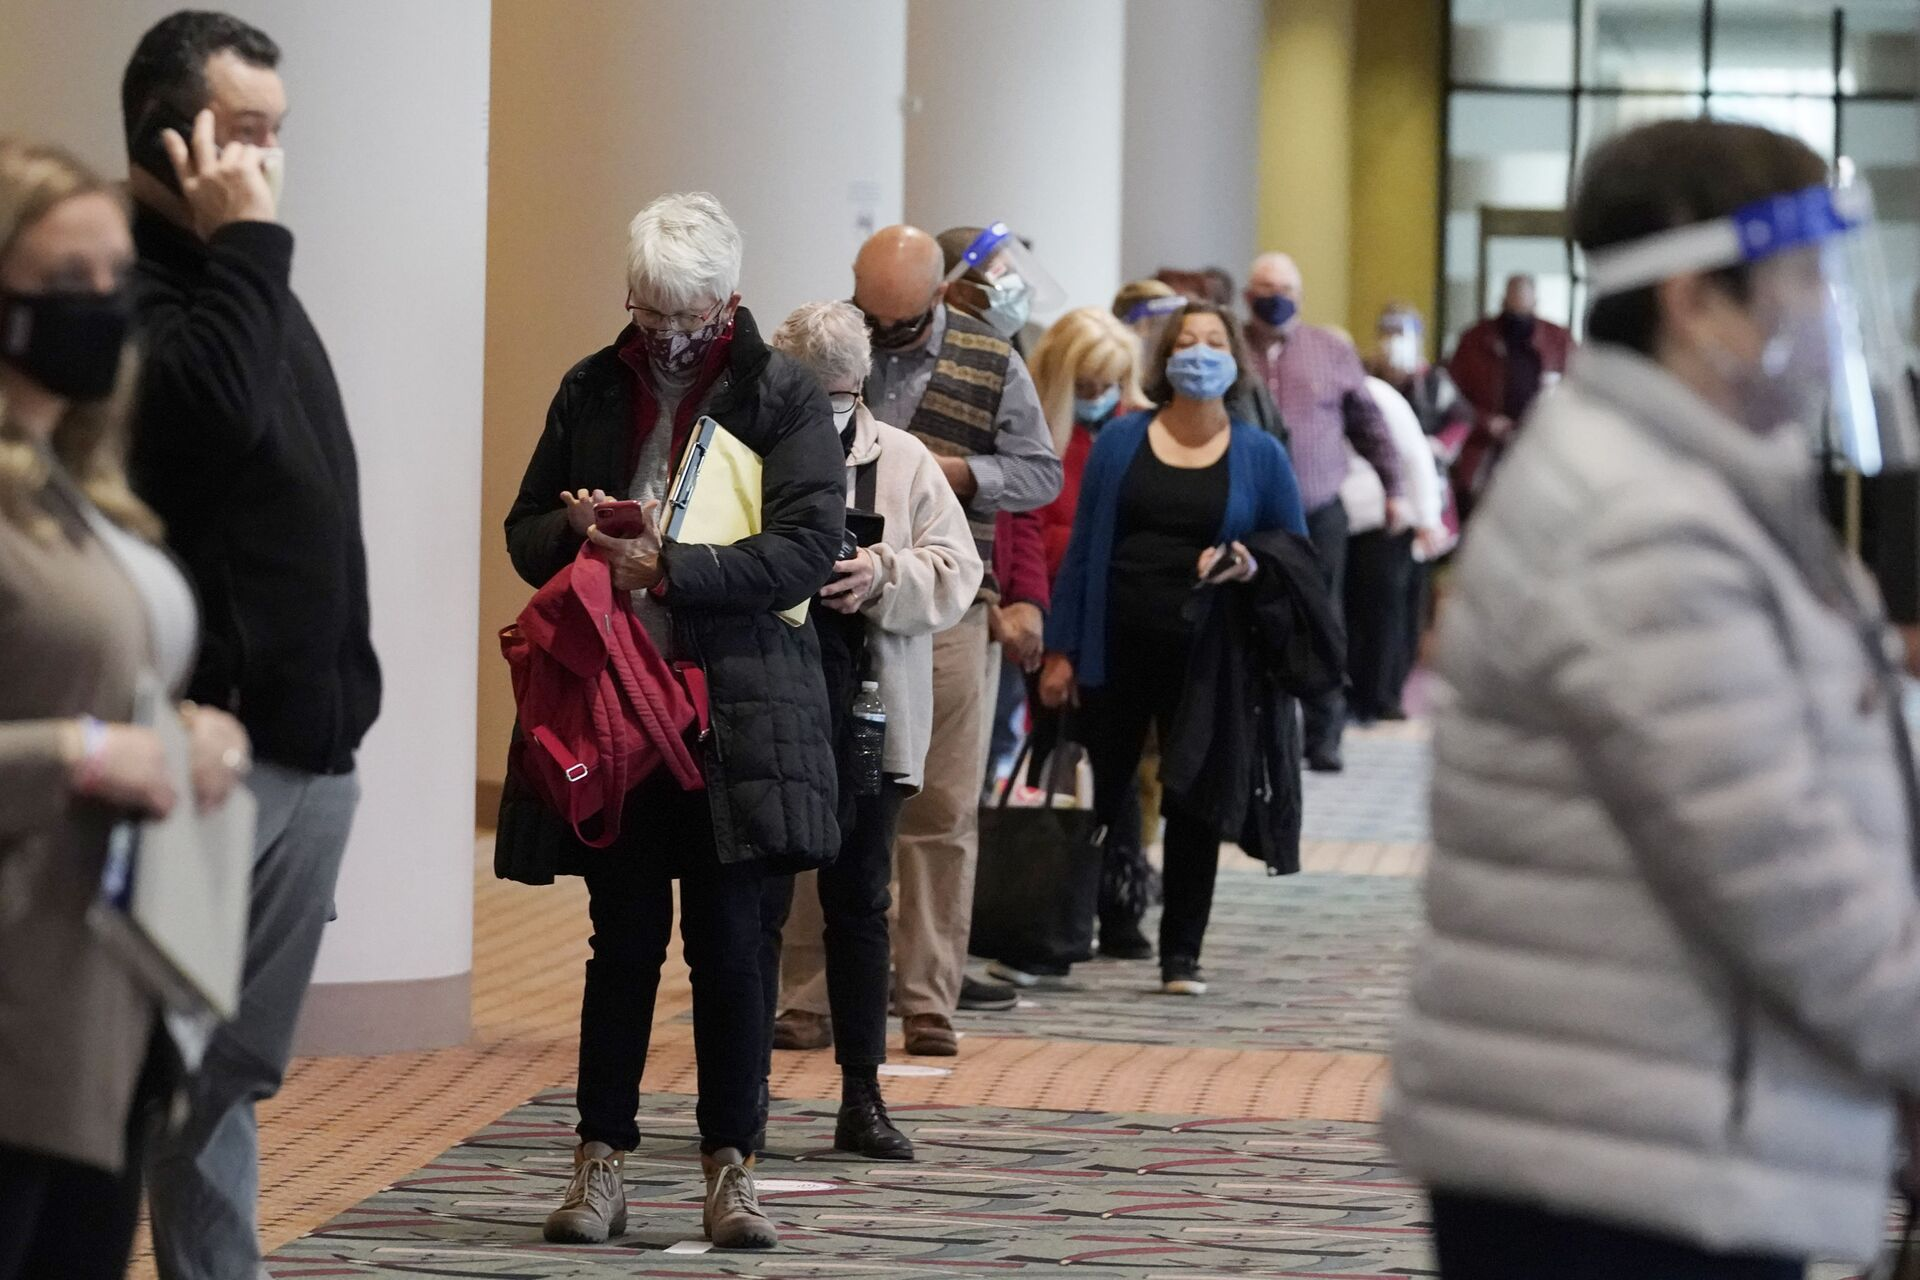 FILE - In this Nov. 20, 2020, file photo, people line up for a Milwaukee hand recount of the presidential election at the Wisconsin Center, in Milwaukee - Sputnik International, 1920, 14.10.2021